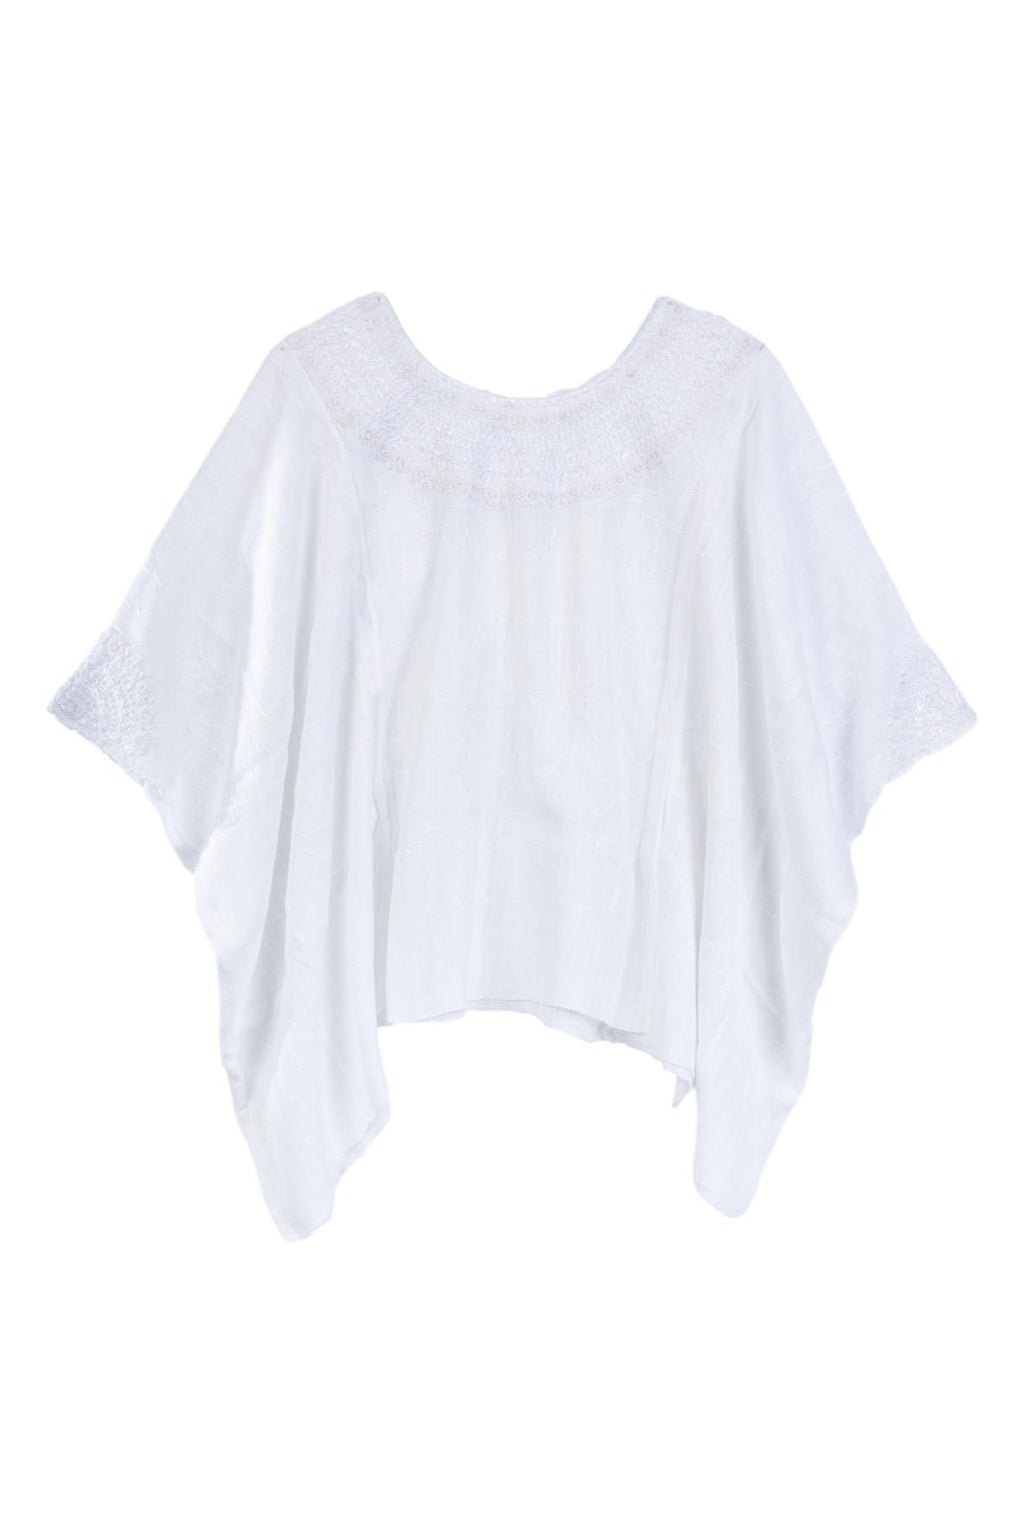 white hand embroidered tunic blouse